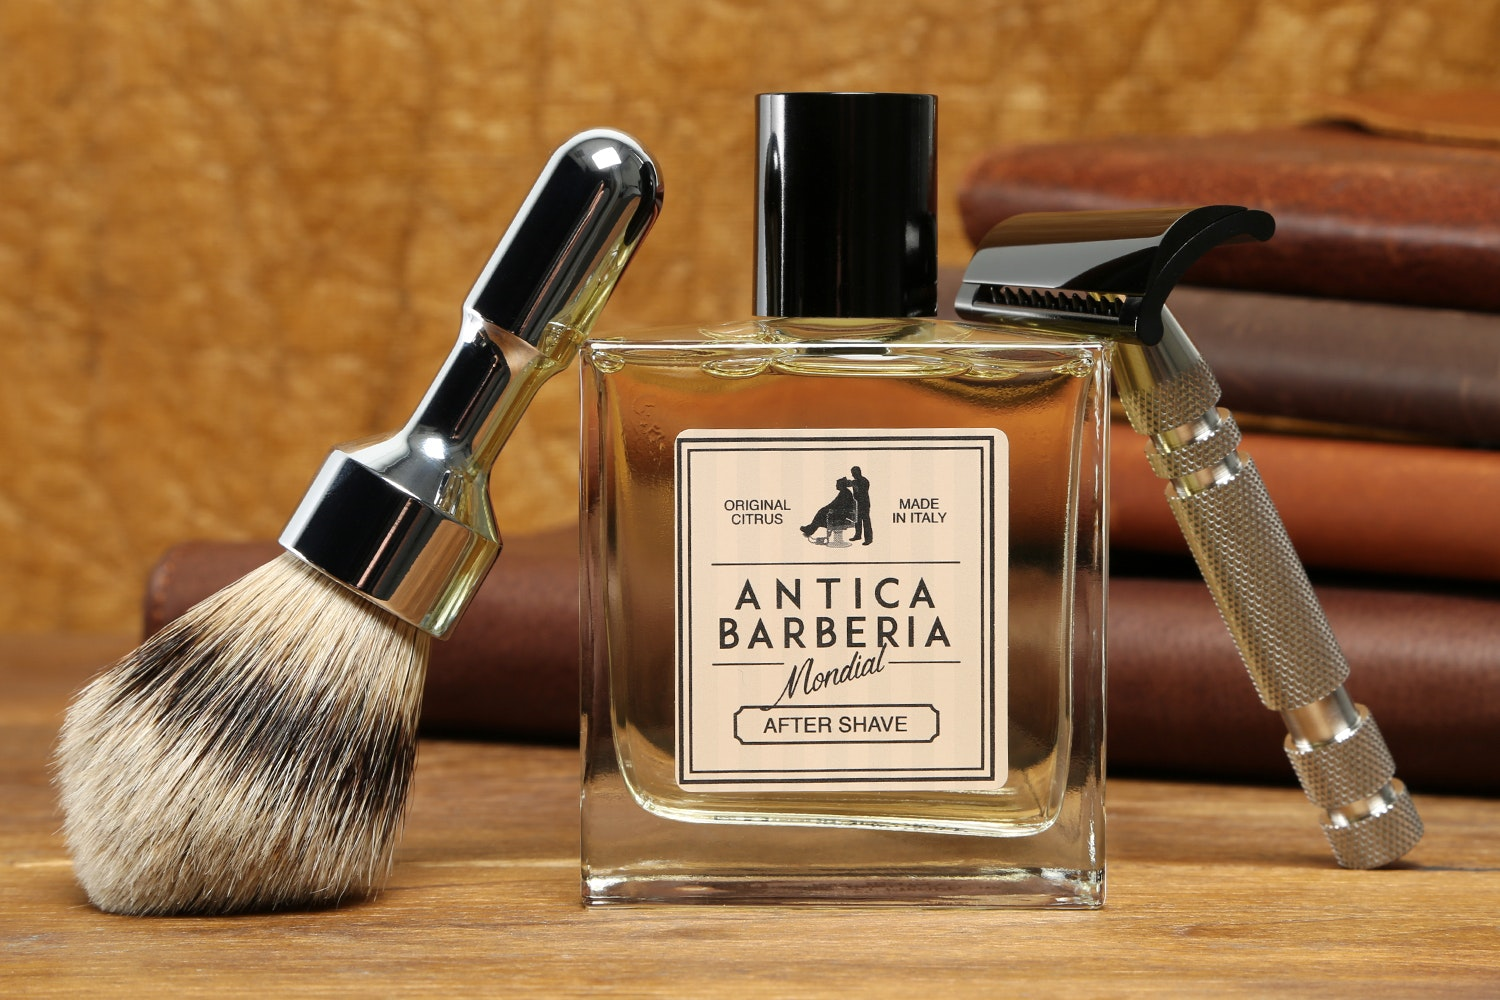 Antica Barberia by Mondial Aftershave